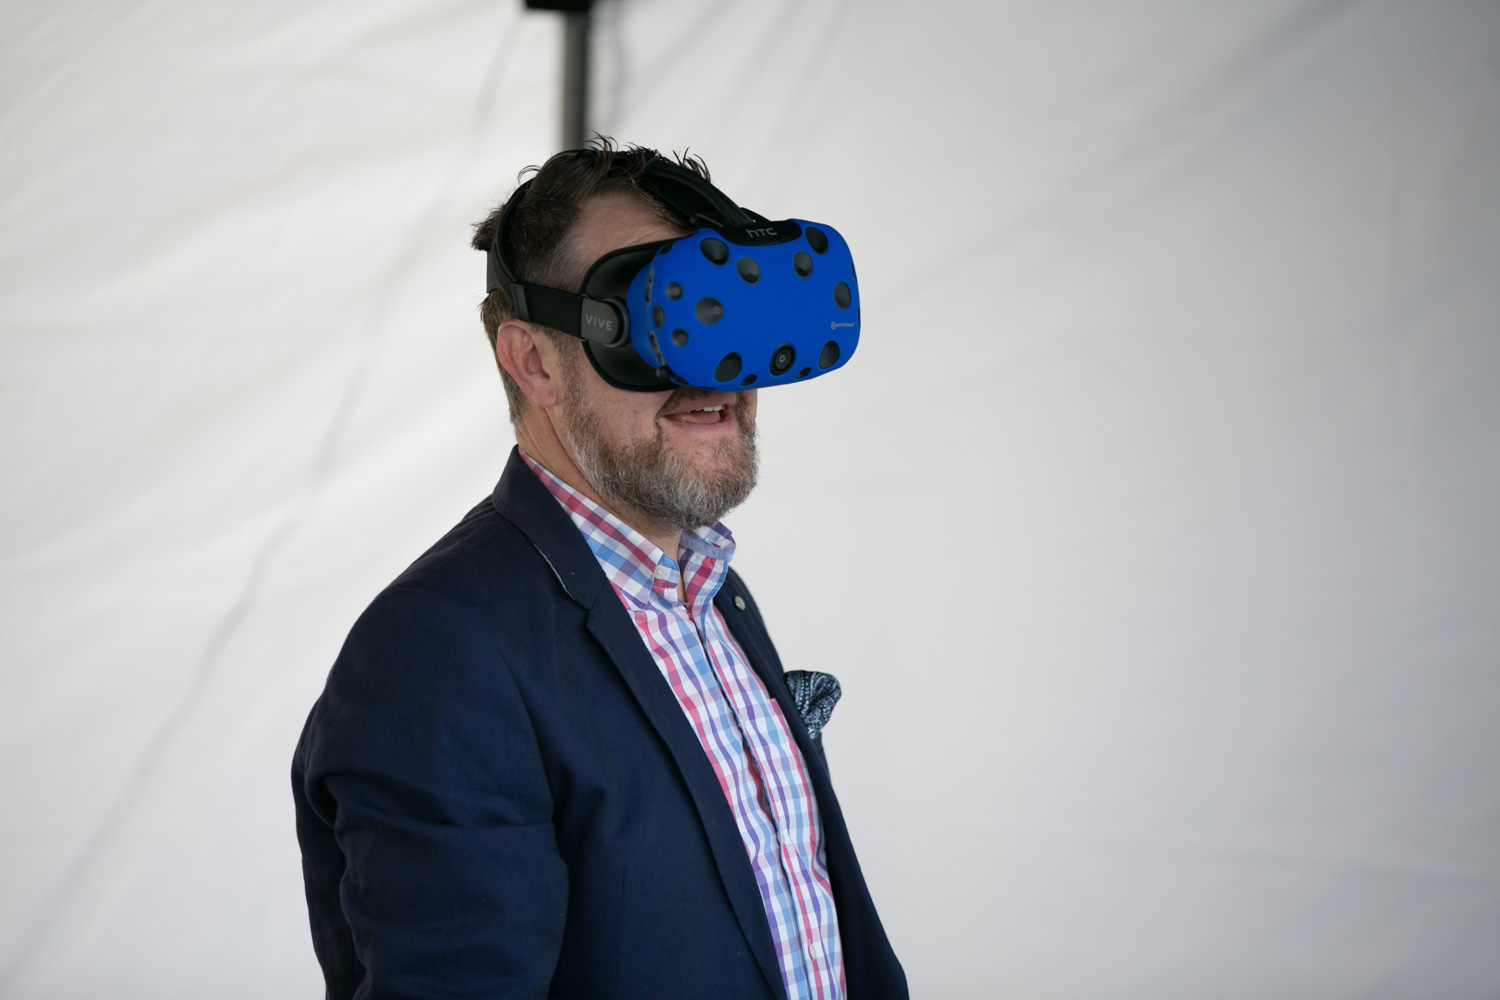 Paul Kitching using VR headset_Web.jpg